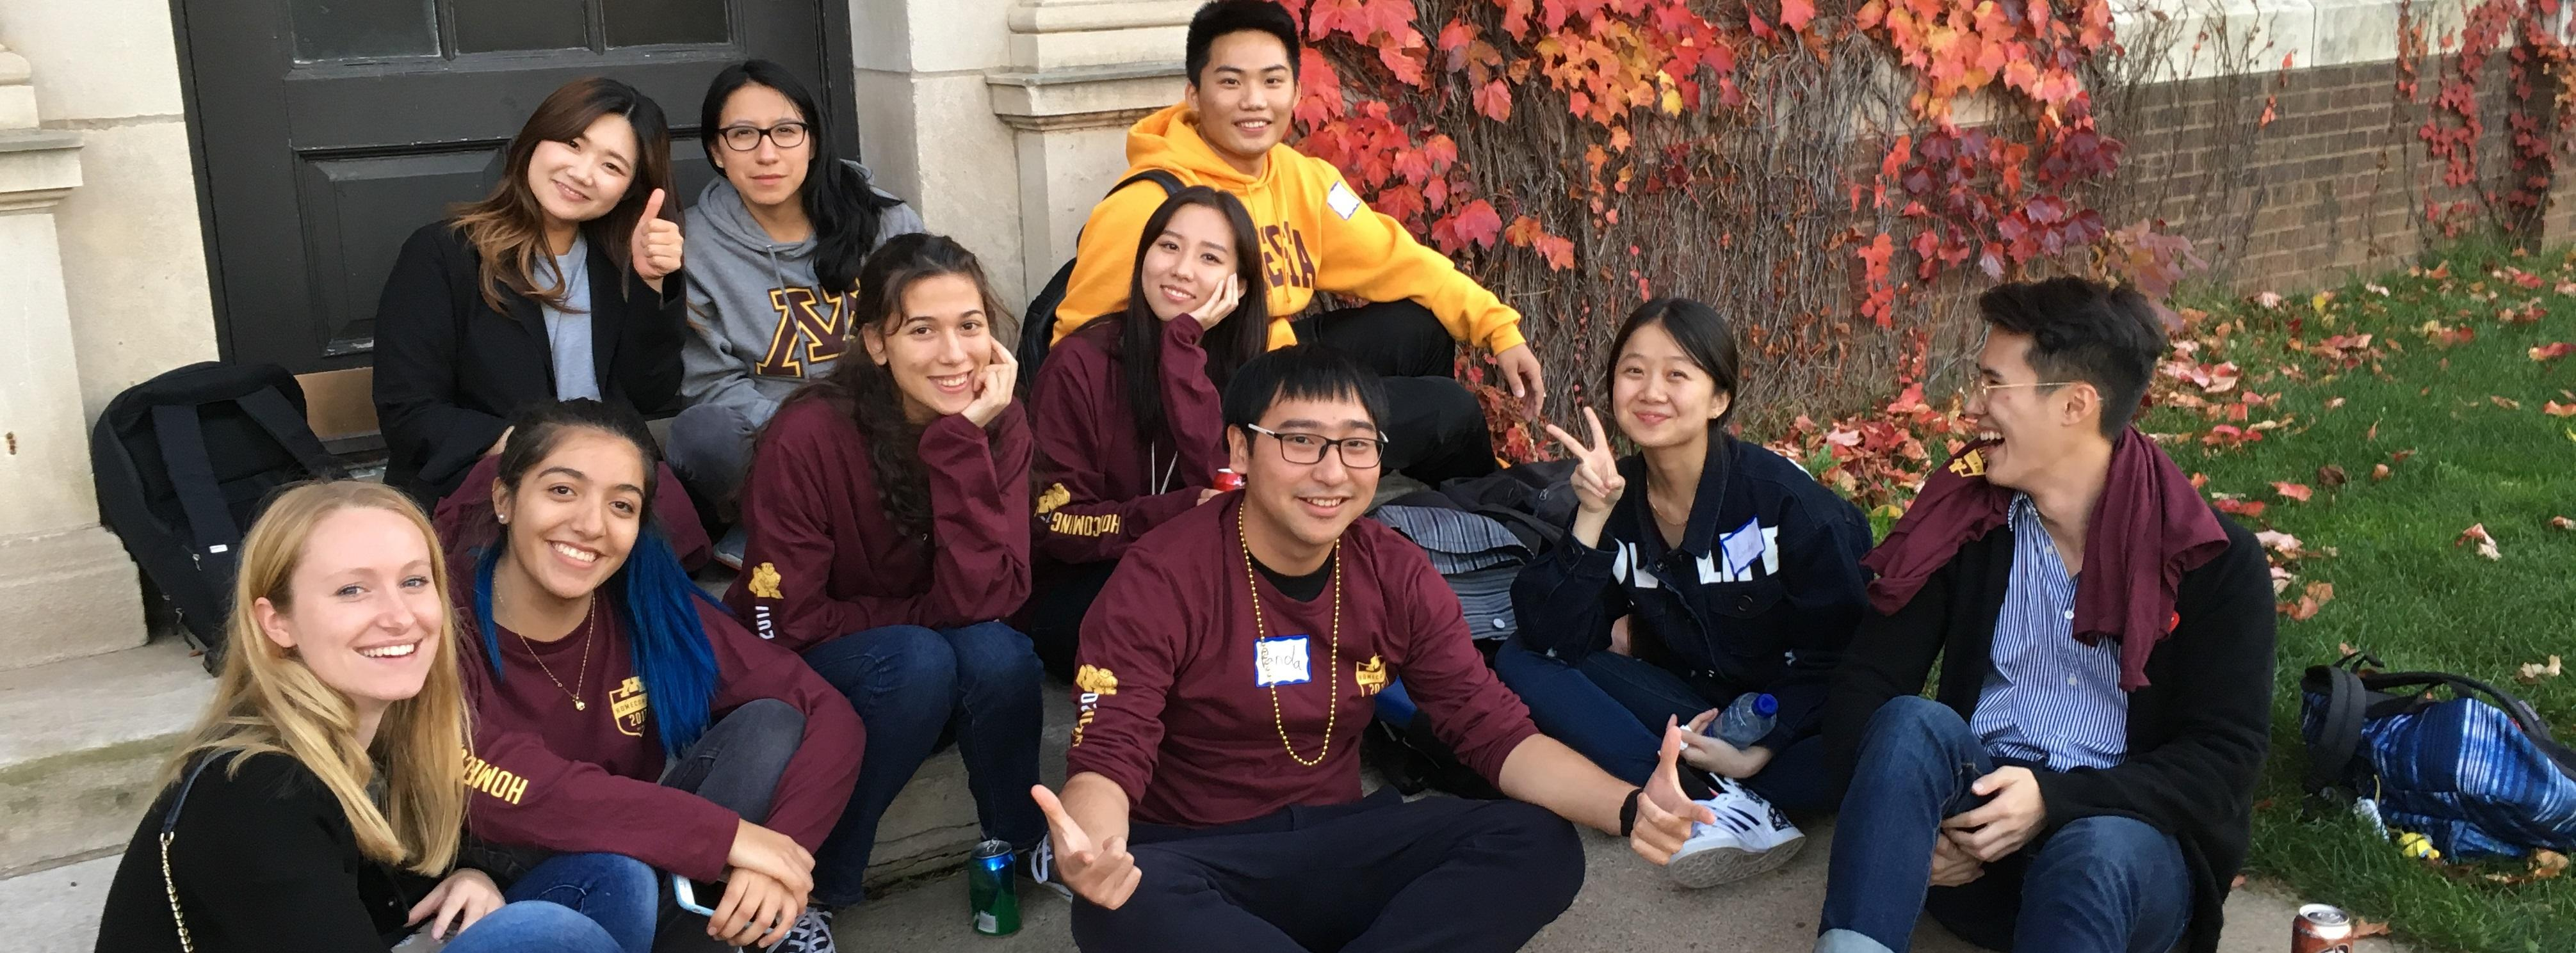 Students sitting on step outside at UMN Homecoming